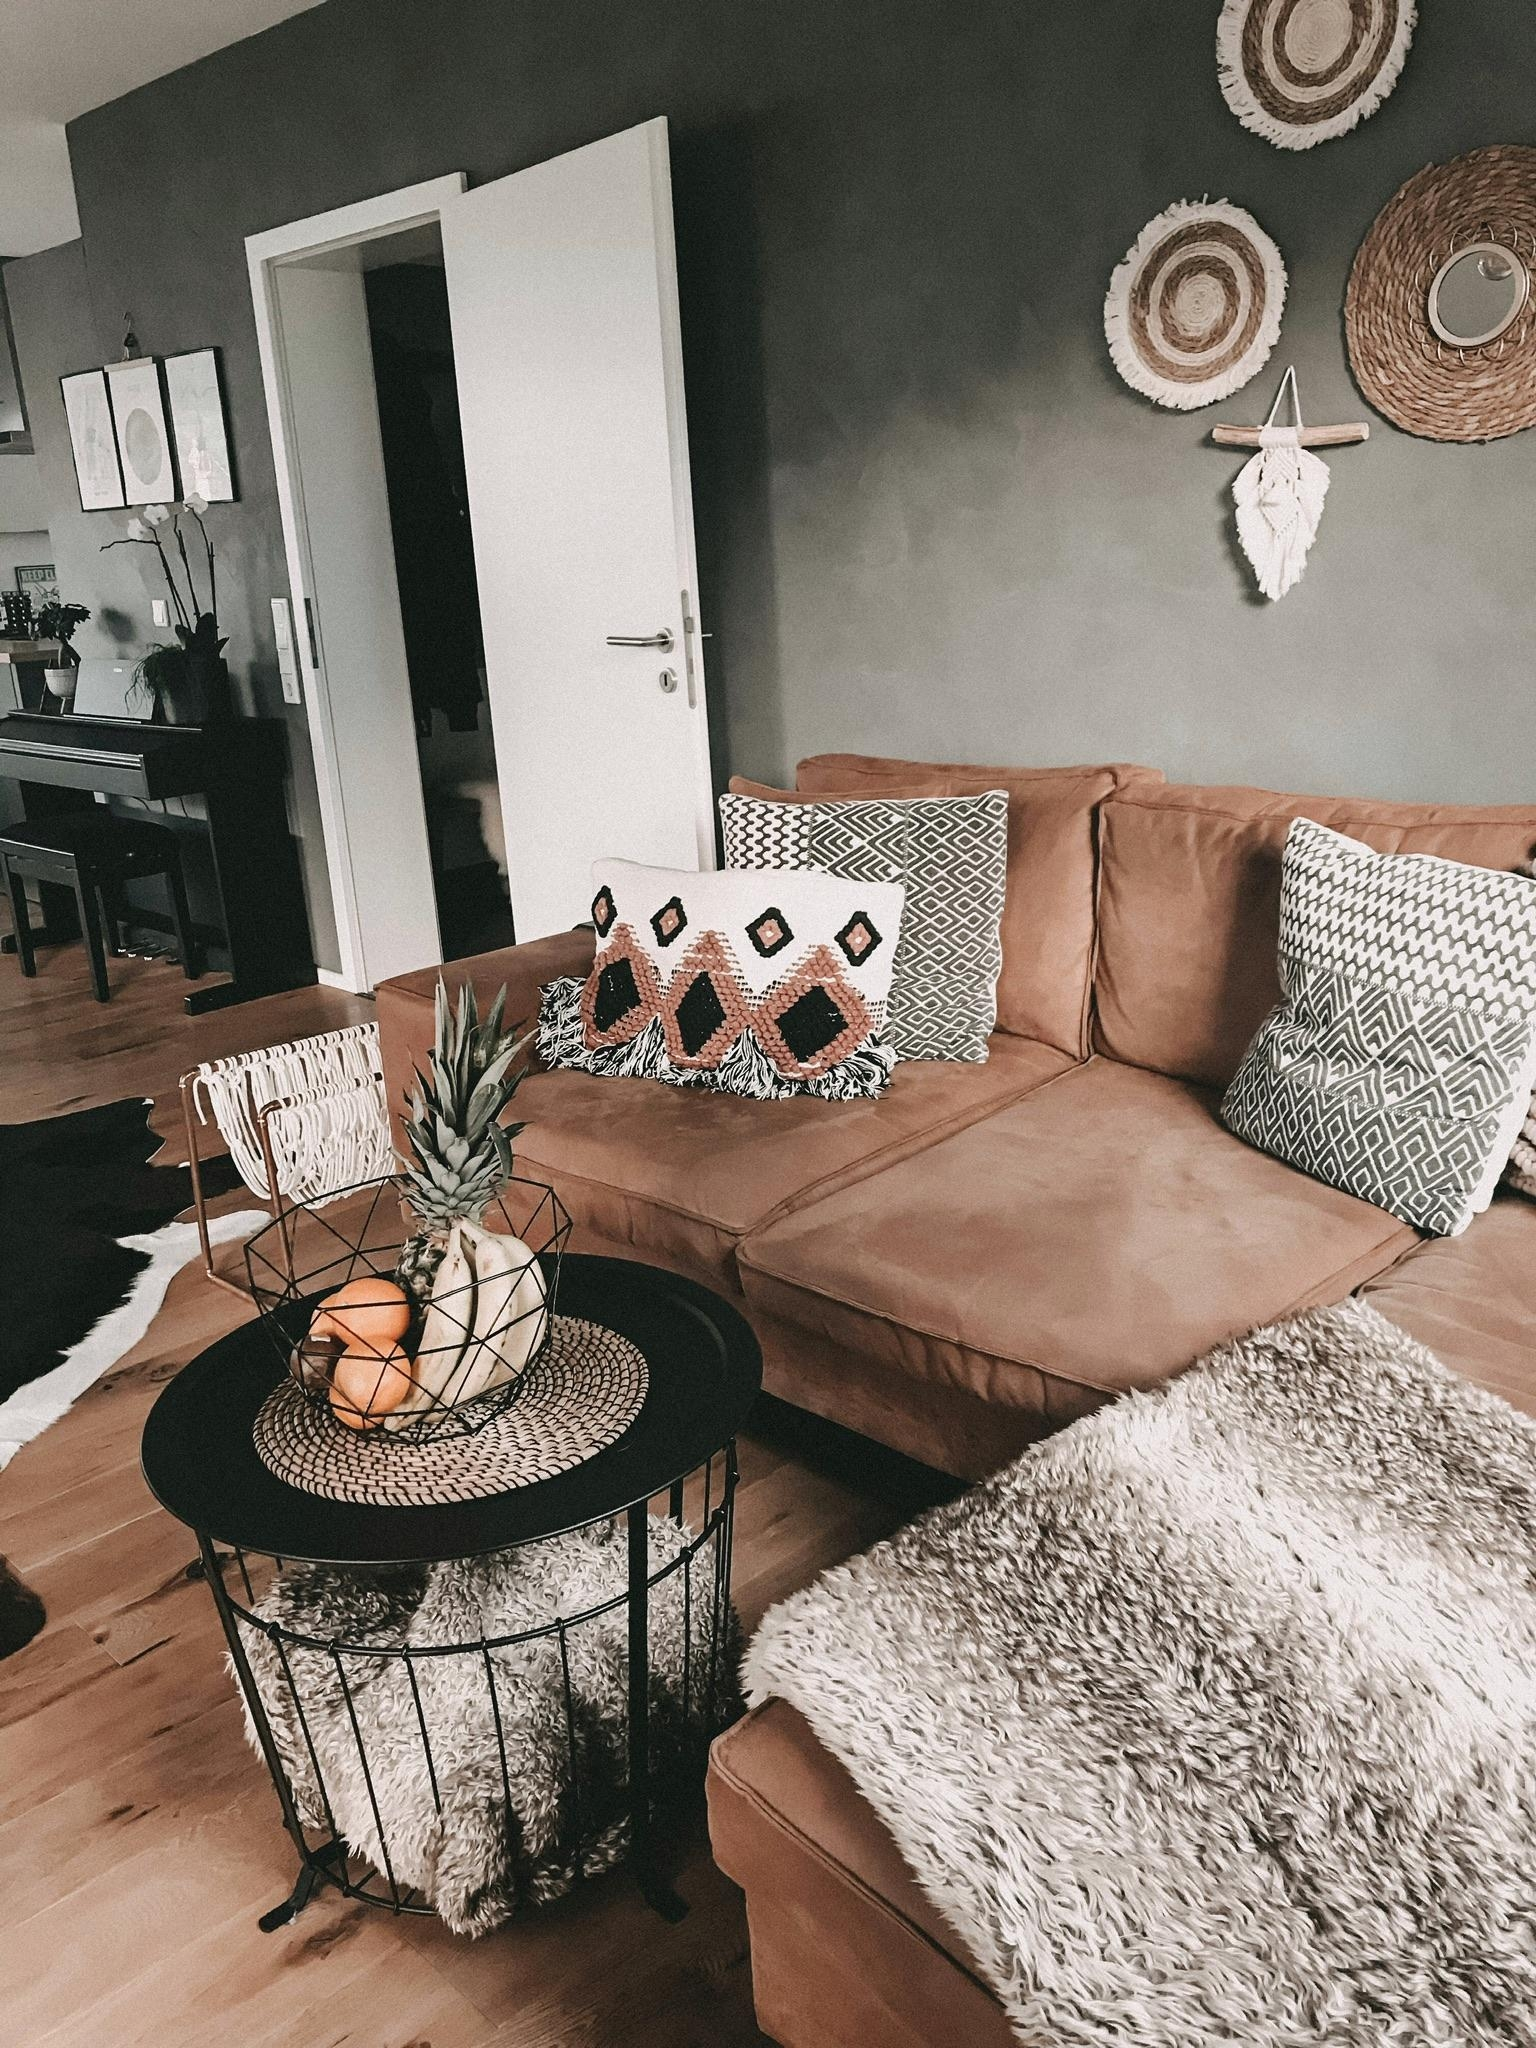 Mein #couchstyle 🙌🏼 Boho trifft auf Industrial! #stilmix #bohostyle #bohemian #industrial #ethno #makramee